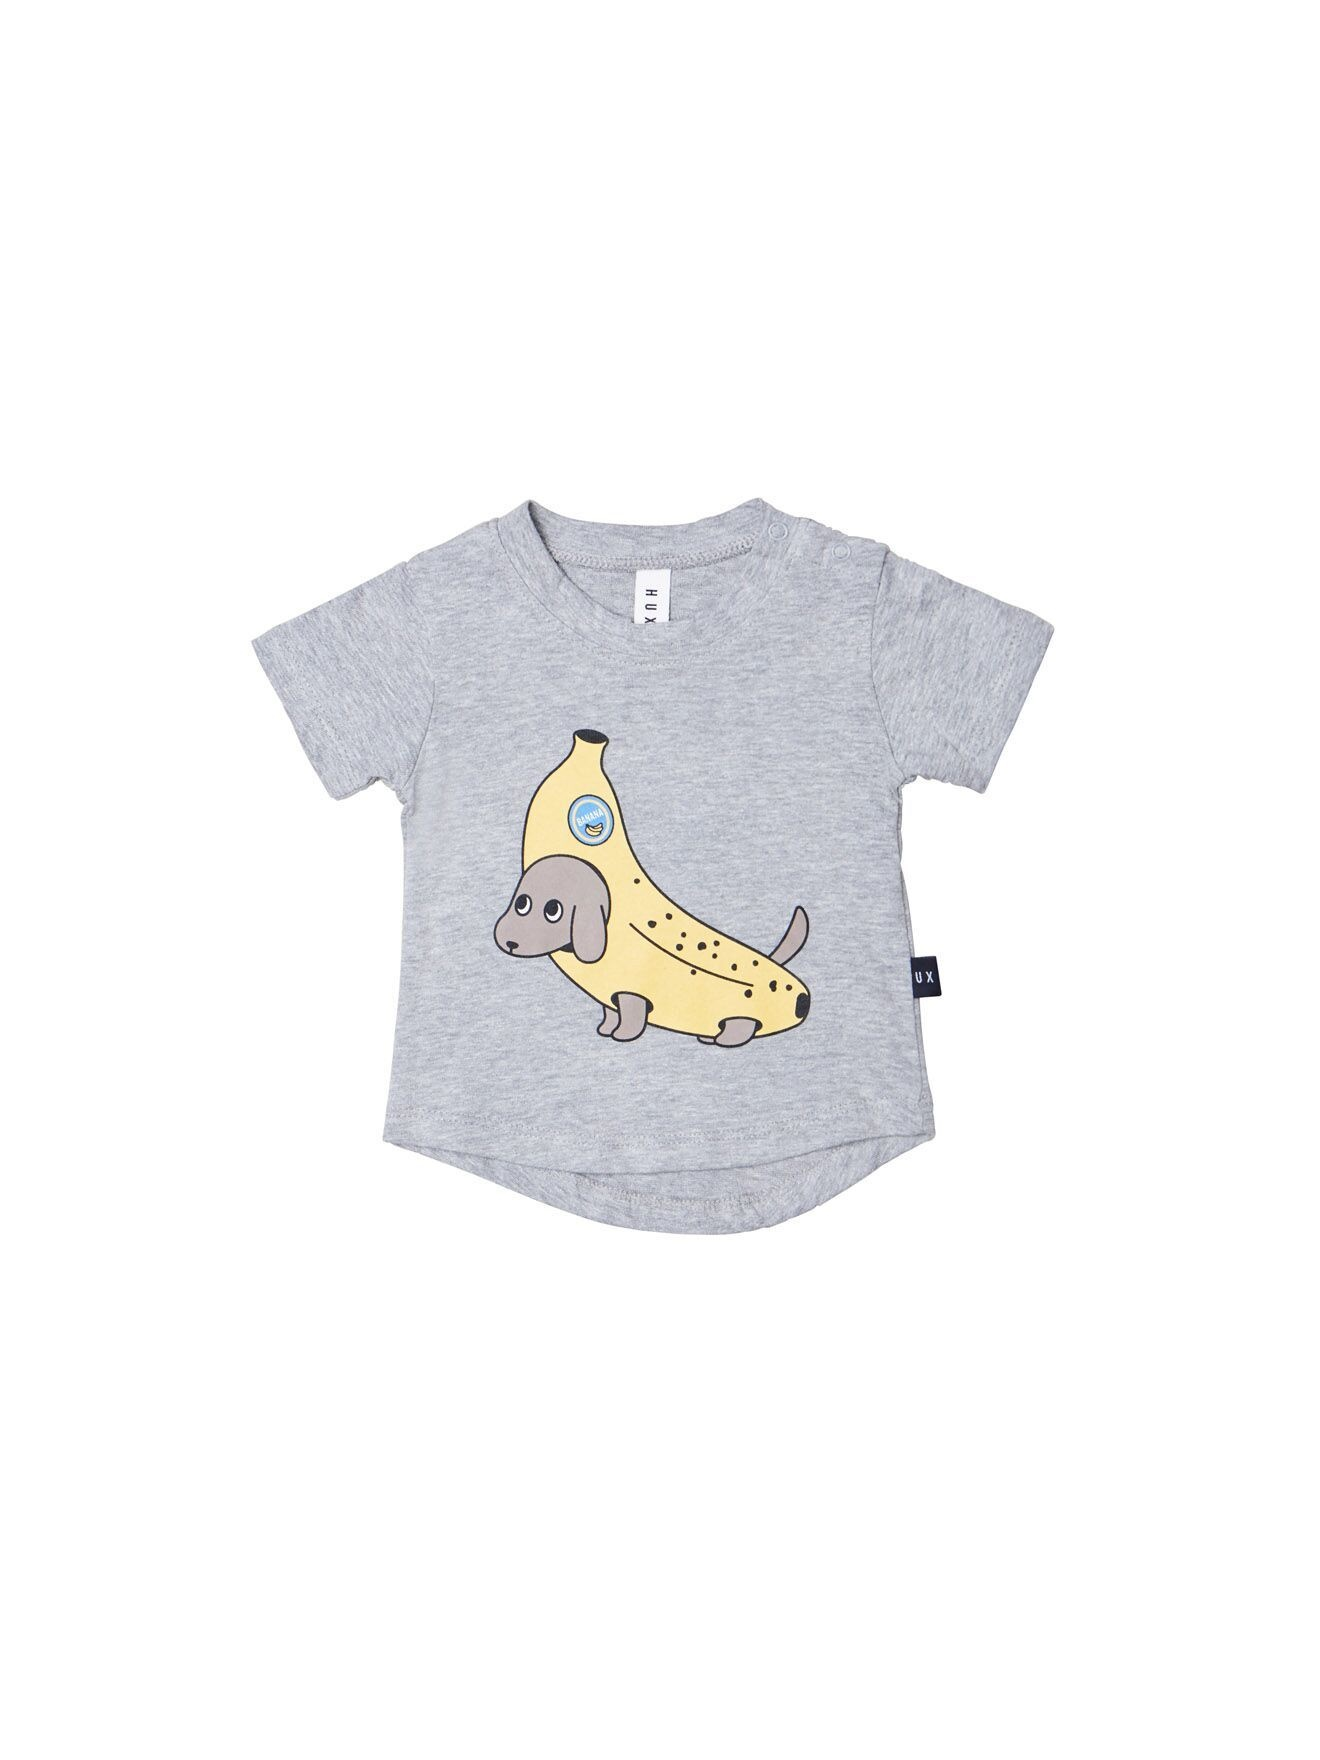 HUX BABY Banana Dog T-Shirt